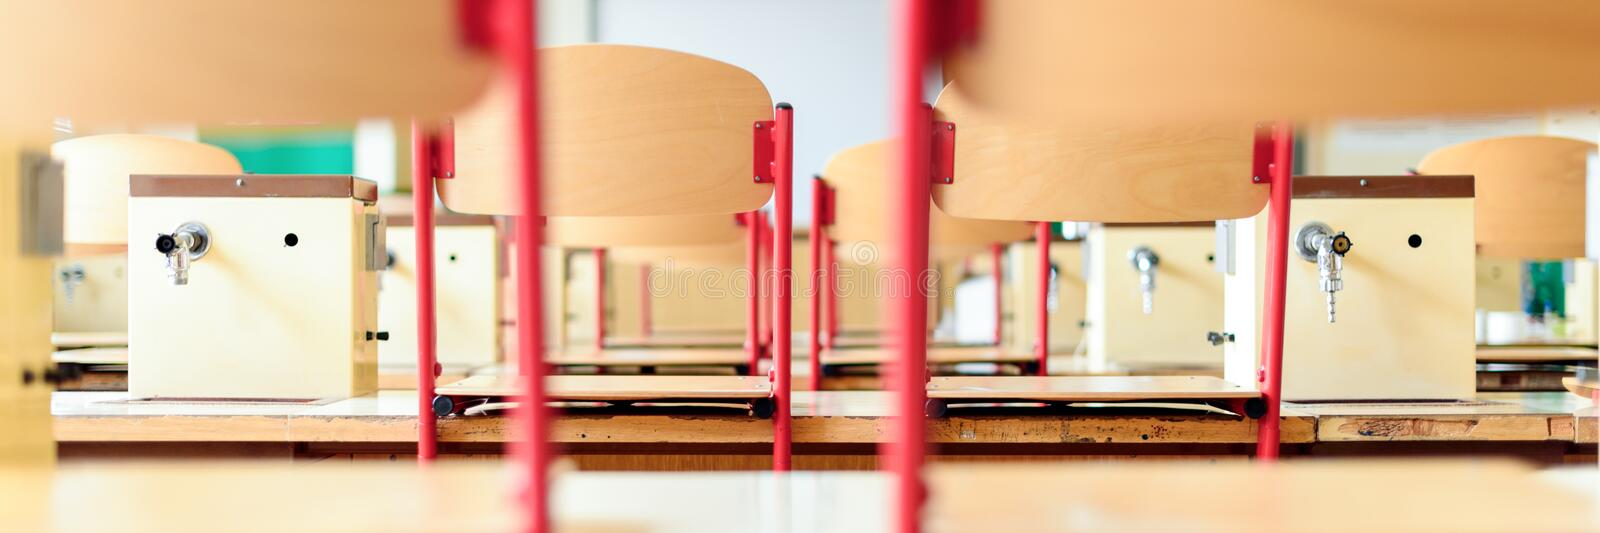 Empty science laboratory classroom. Education concept stock photography